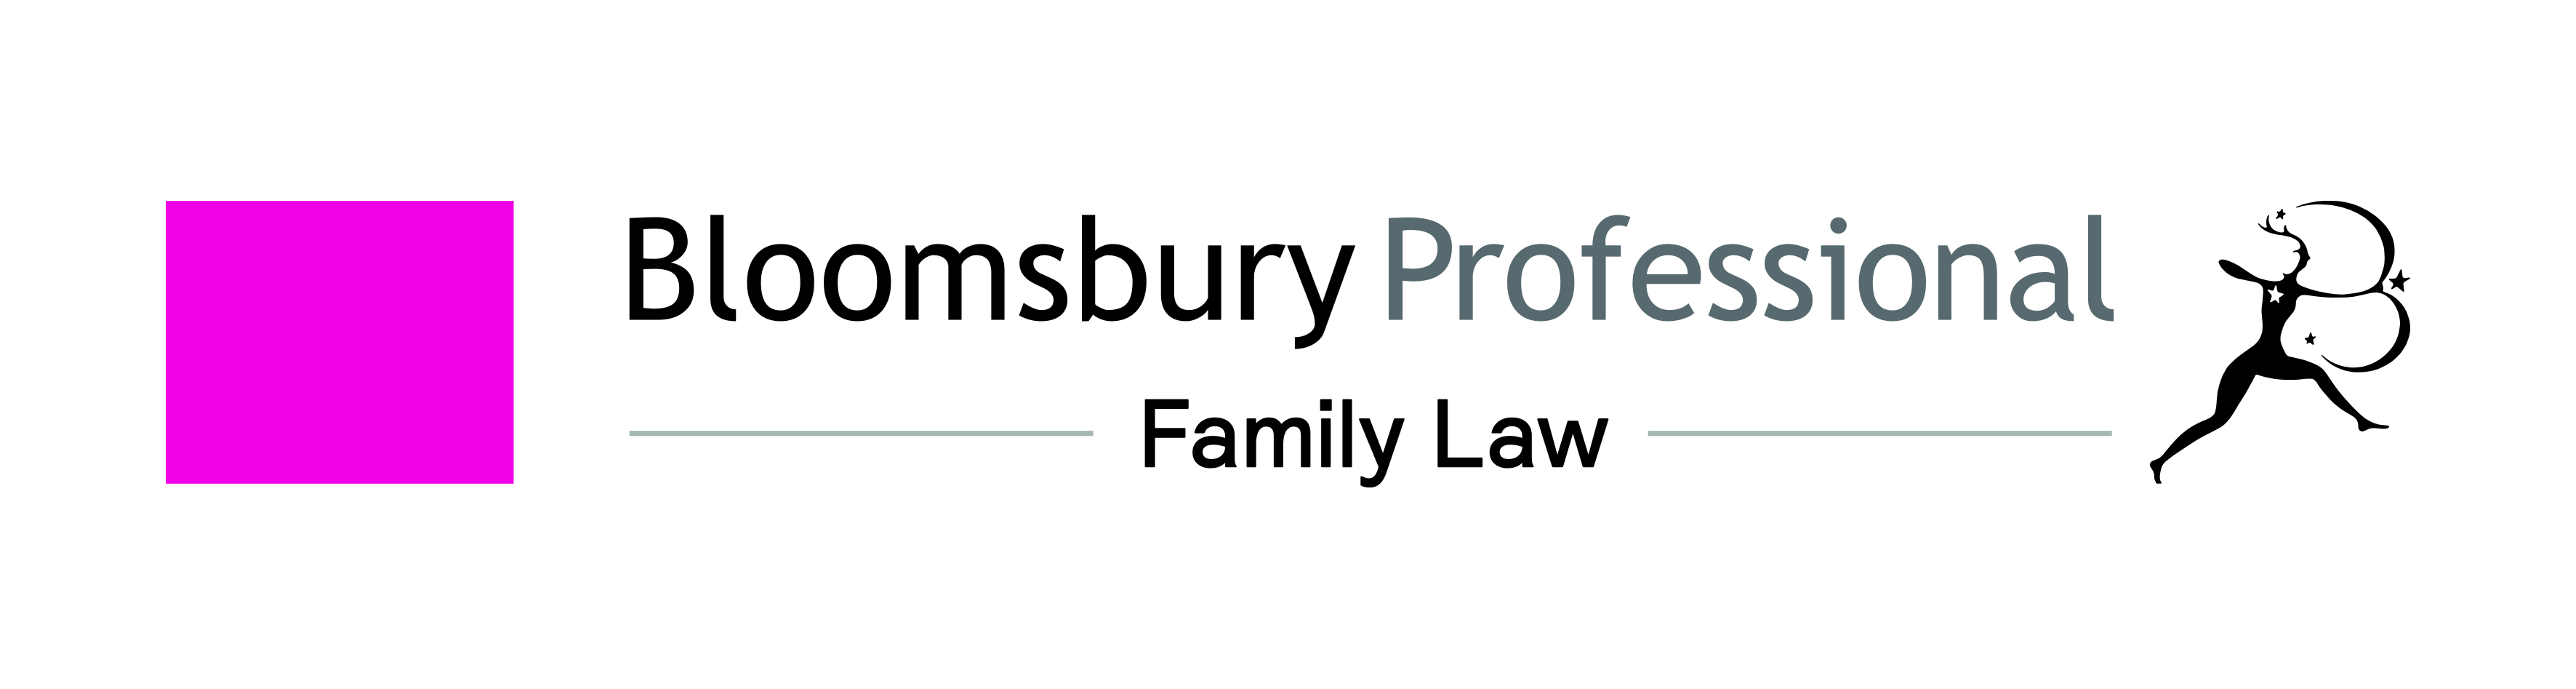 ... vulnerable witnesses and child migration, Bloomsbury Professional  Family Law takes its place as the chosen family law publisher for this new  era.